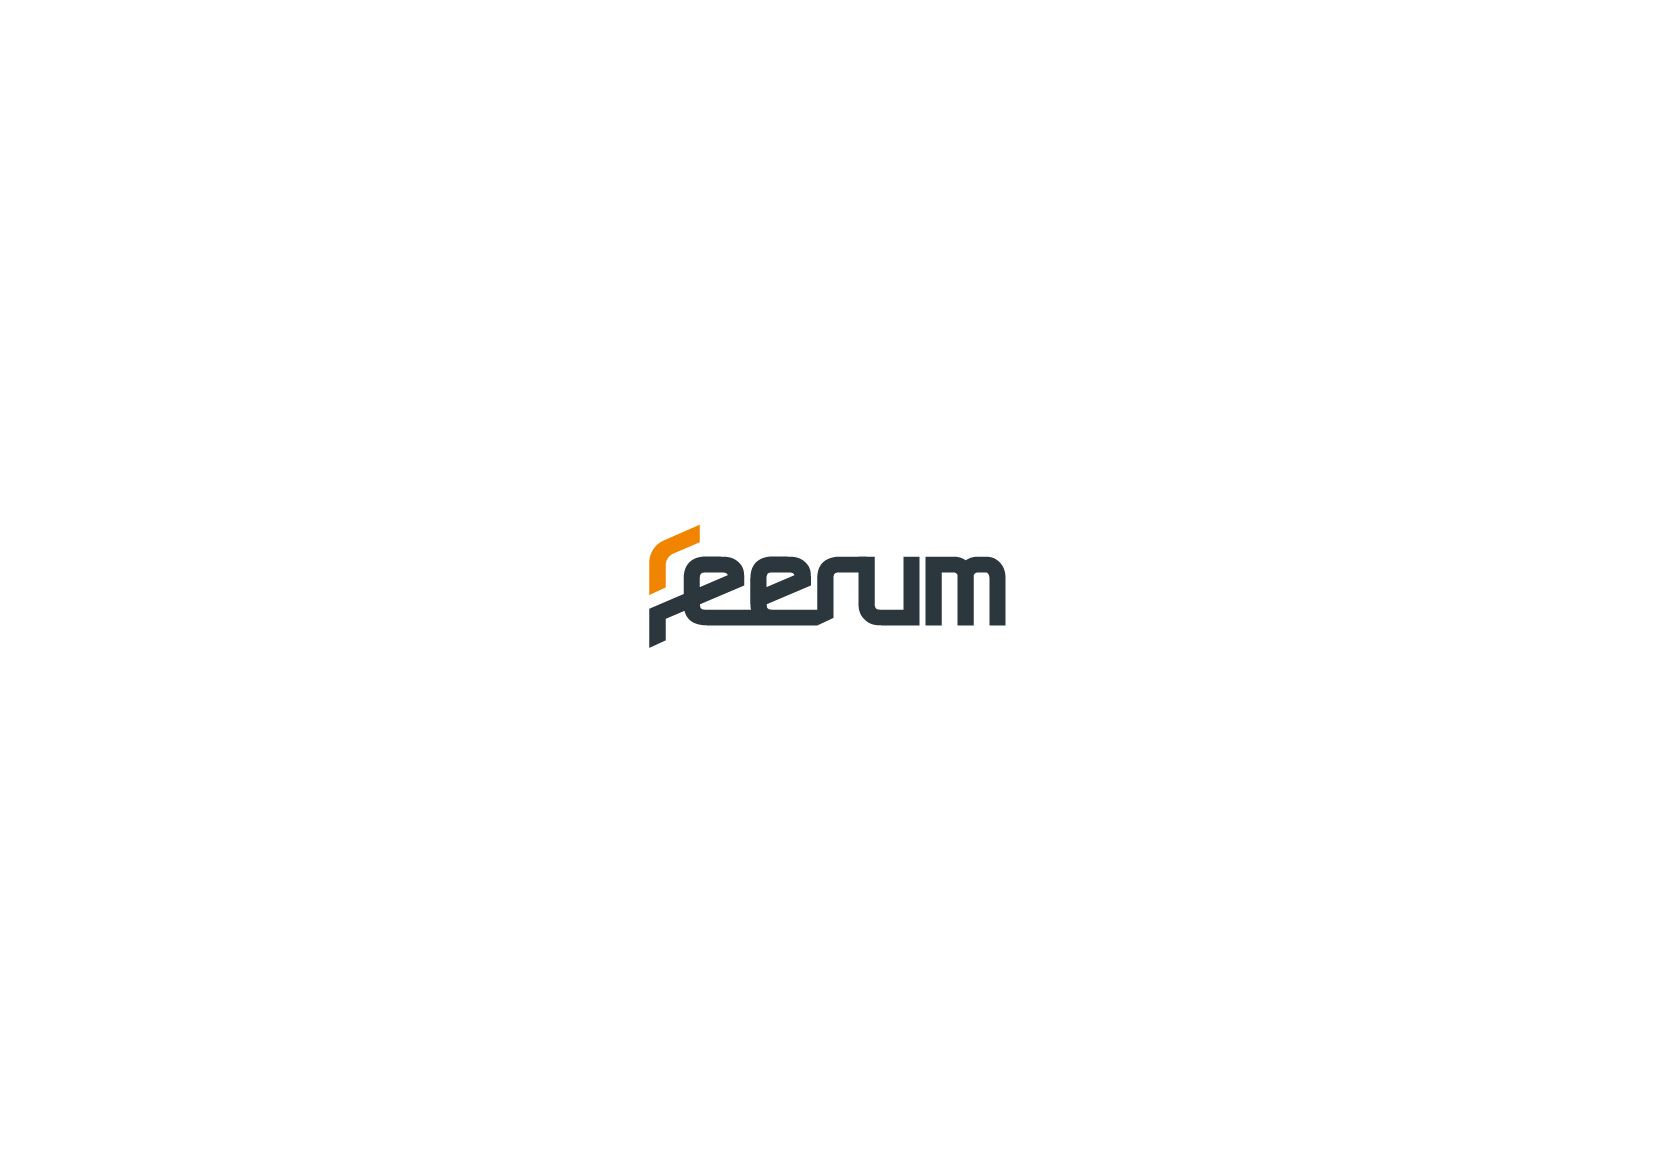 feerum nowe logo_basic